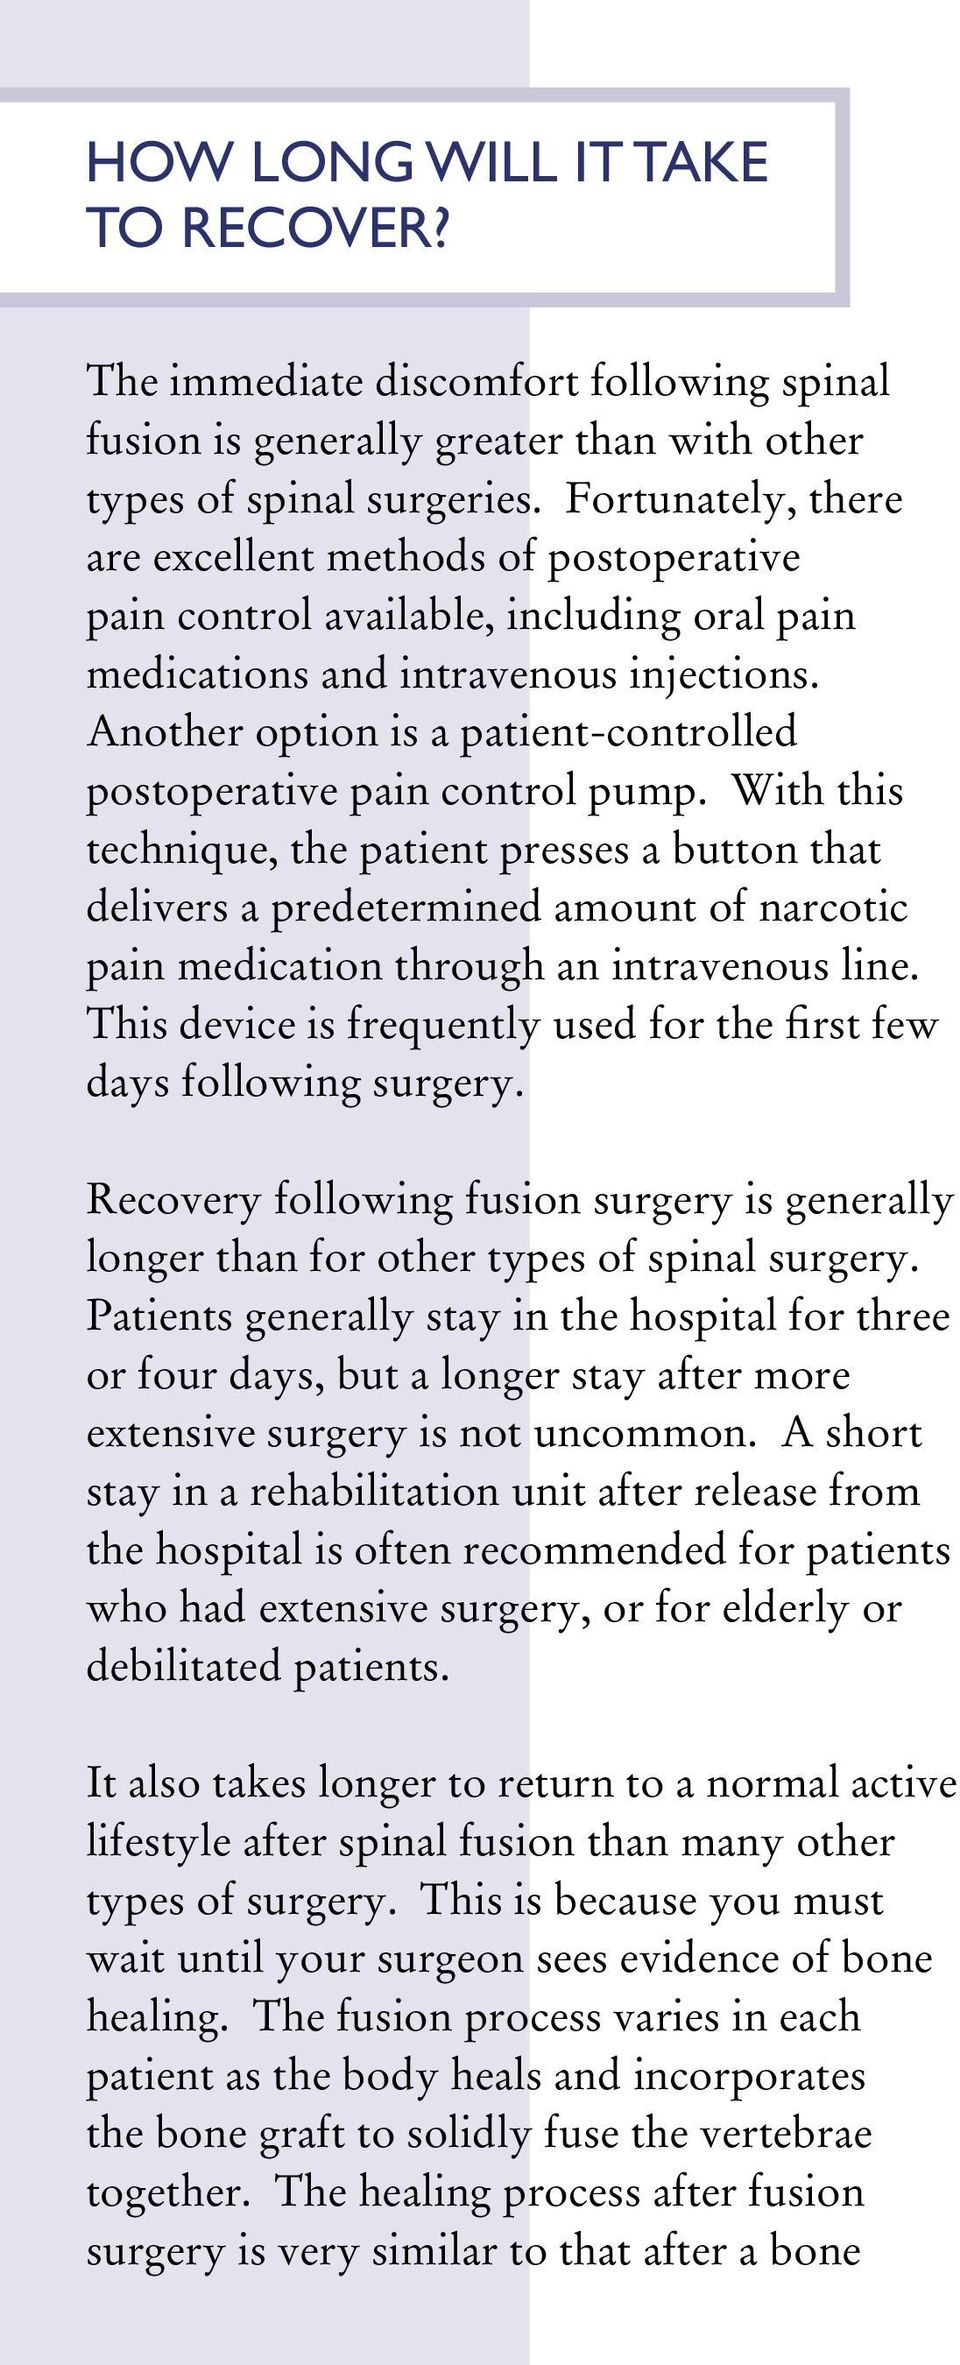 Another option is a patient-controlled postoperative pain control pump.